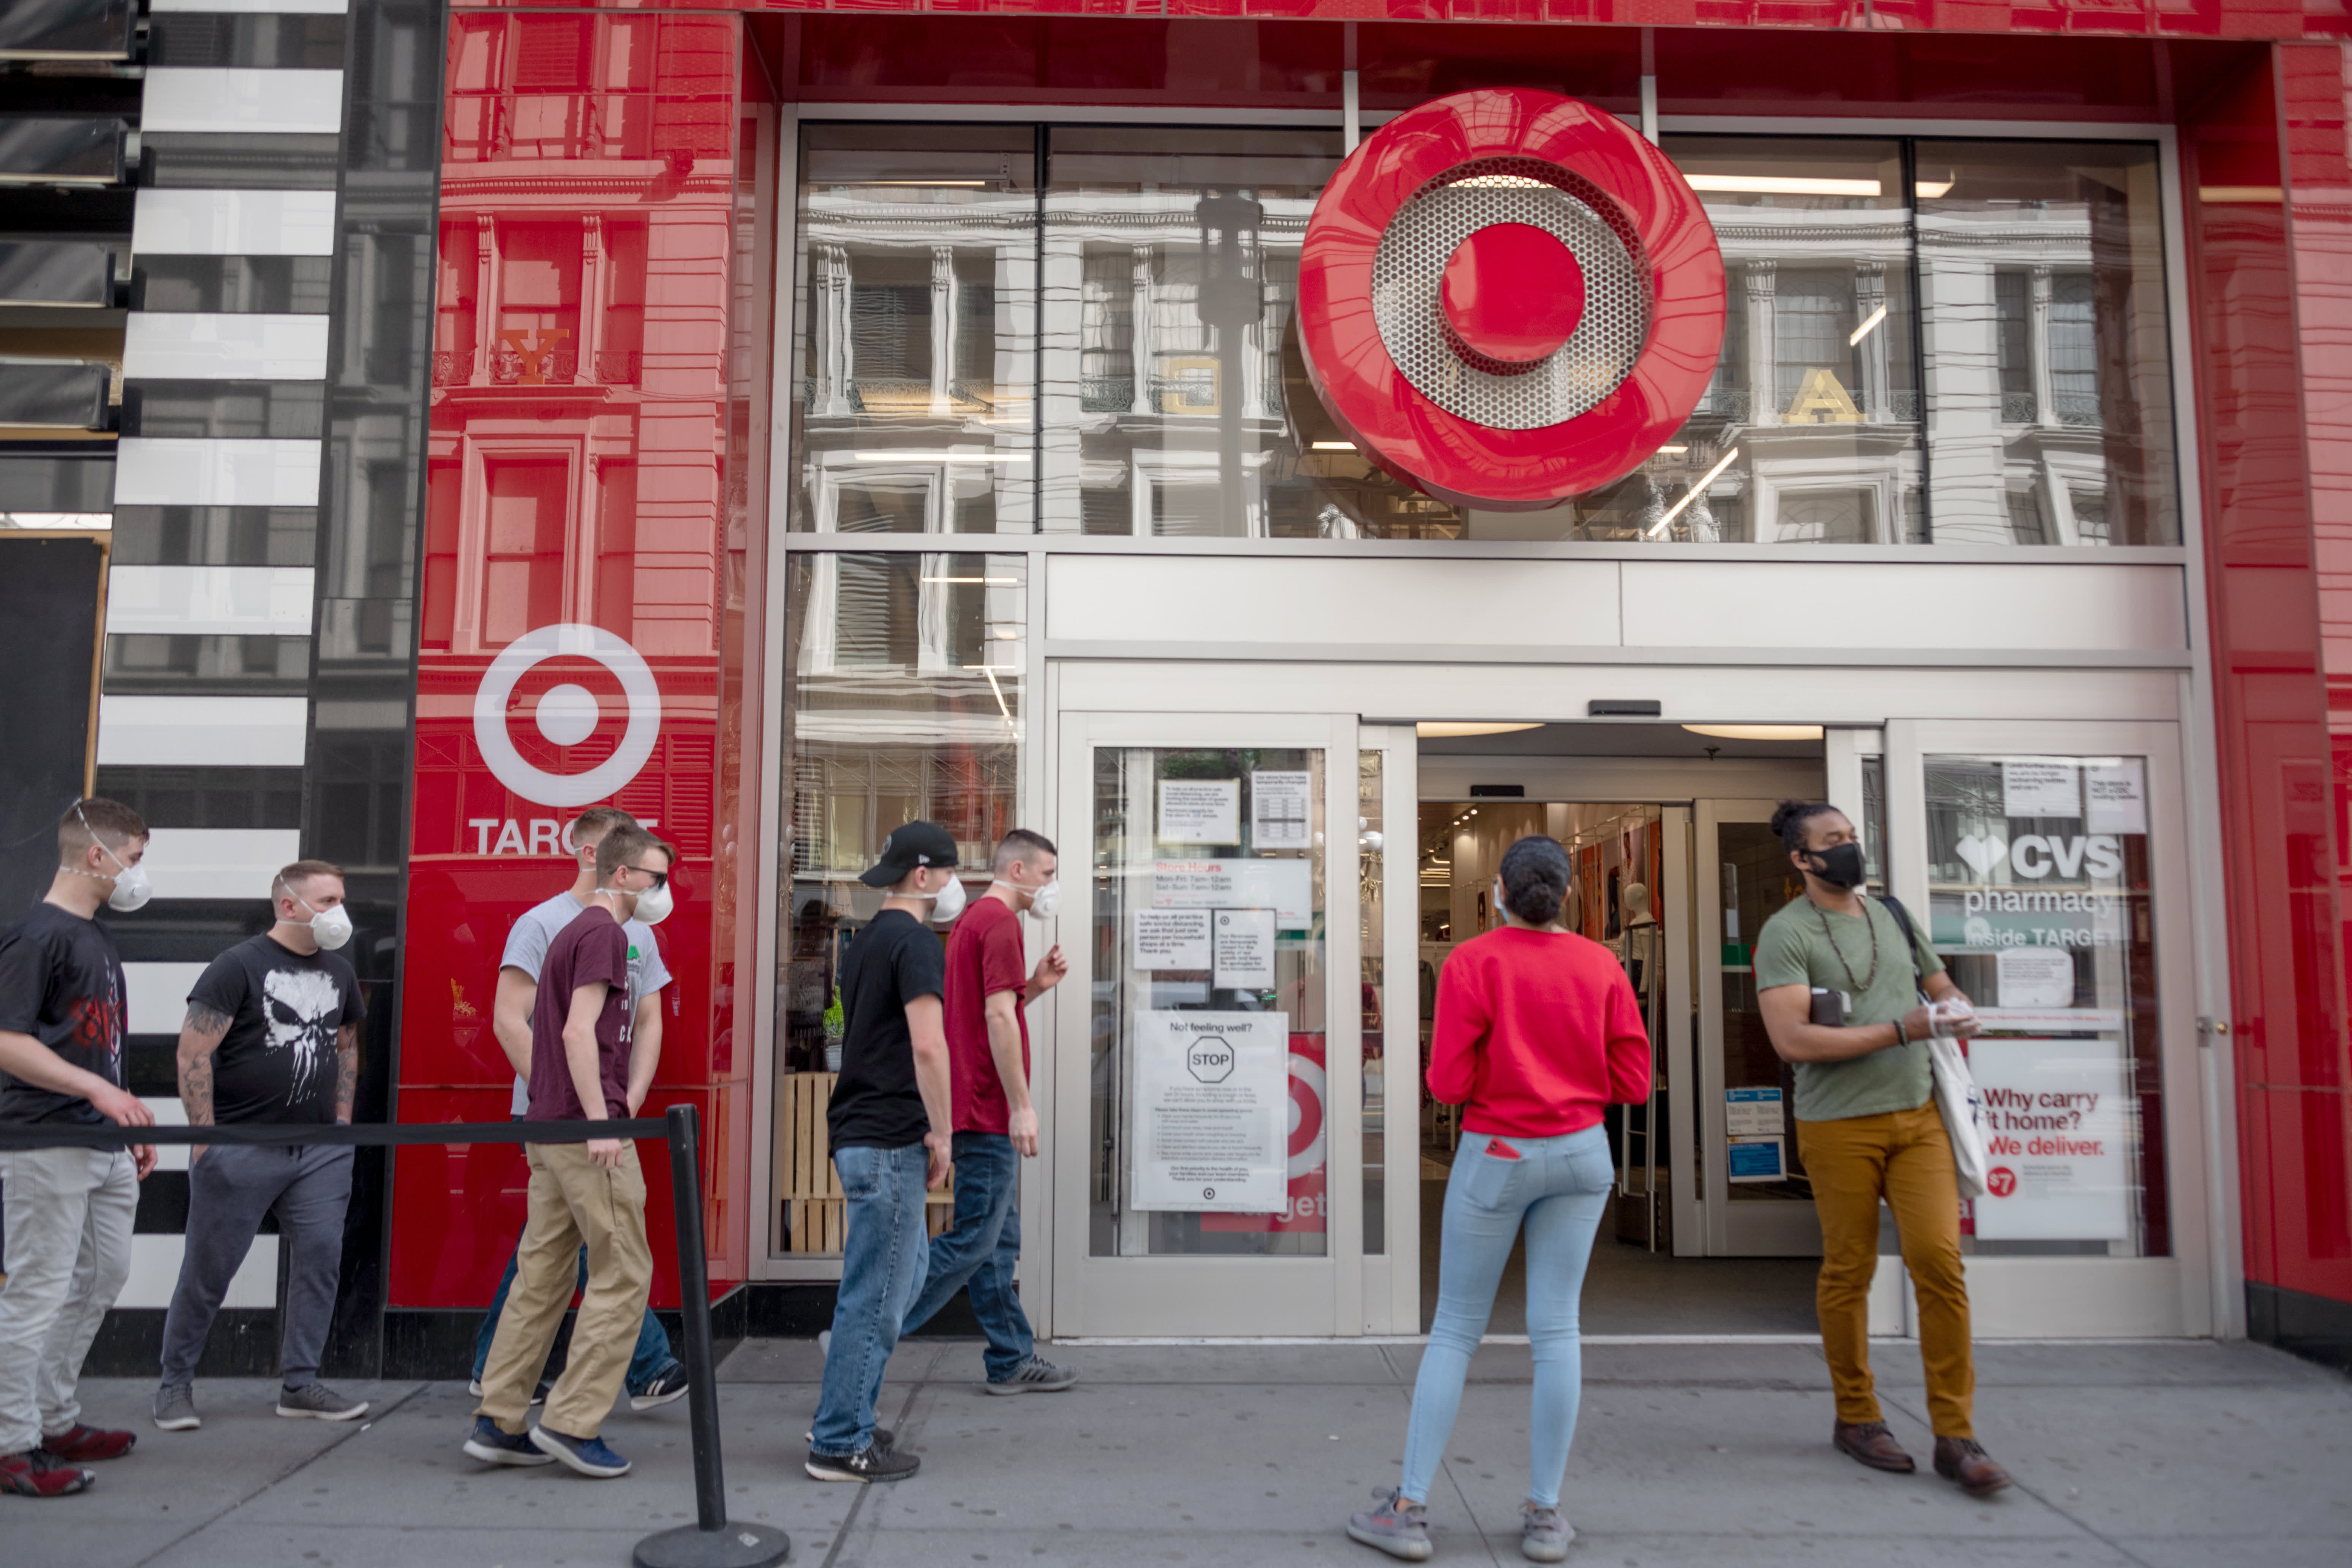 Target crushes estimates as retailer uses new shopper habits to gain market share – CNBC